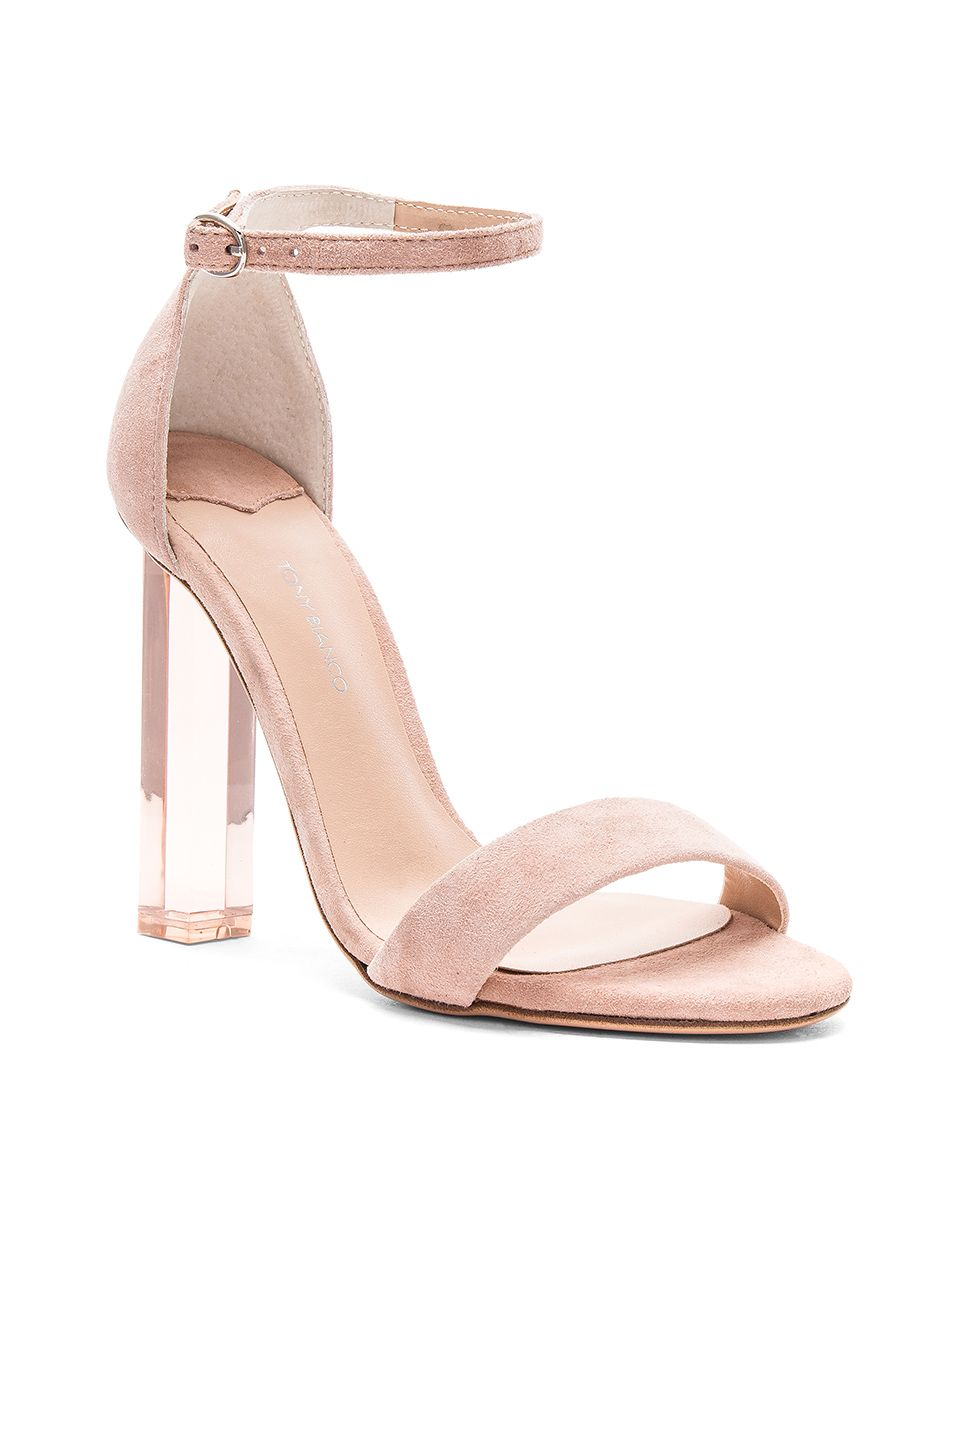 7e2d79b8657 Tony Bianco Kashmir Heel in Blush Kid Suede